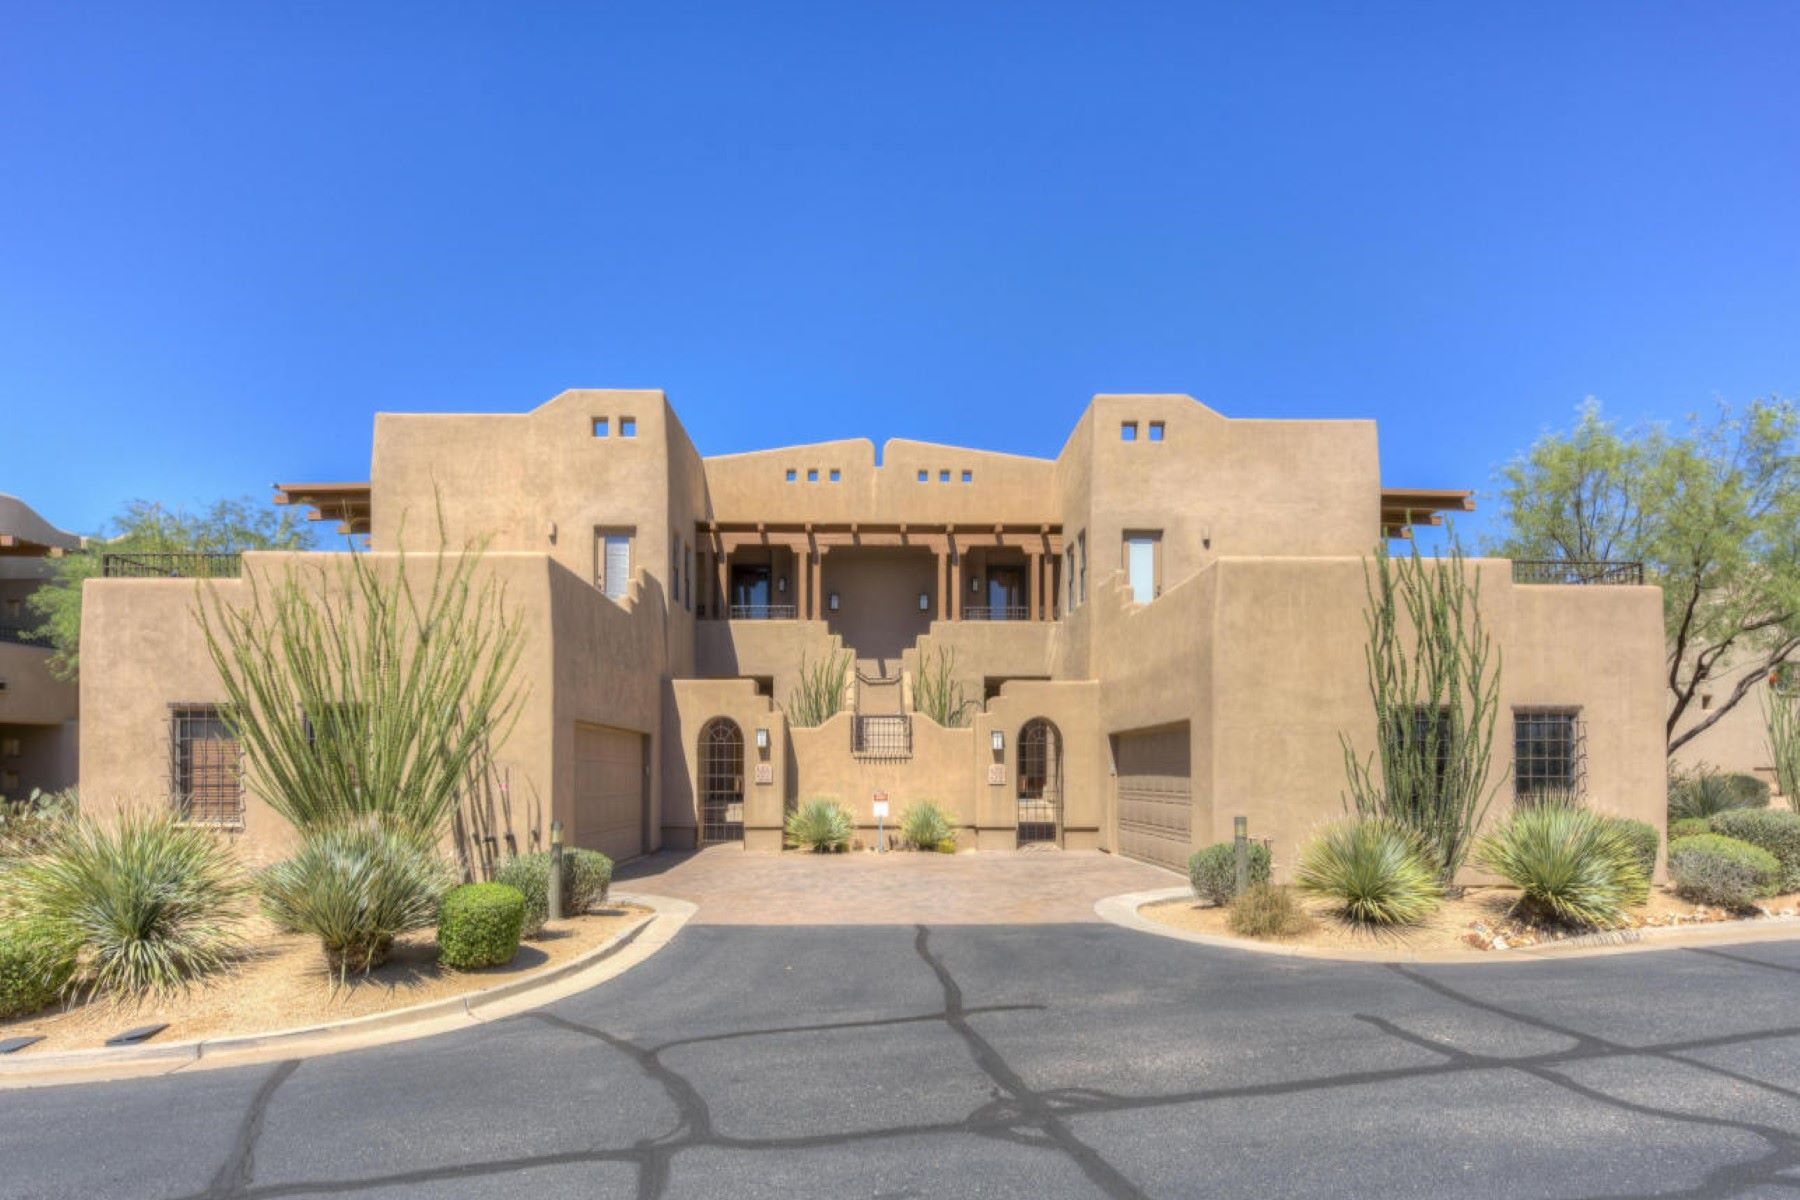 Townhouse for Sale at Natural beauty in the impeccably planned community of the Village at Carefree 36601 N Mule Train Rd N A37 Carefree, Arizona, 85377 United States